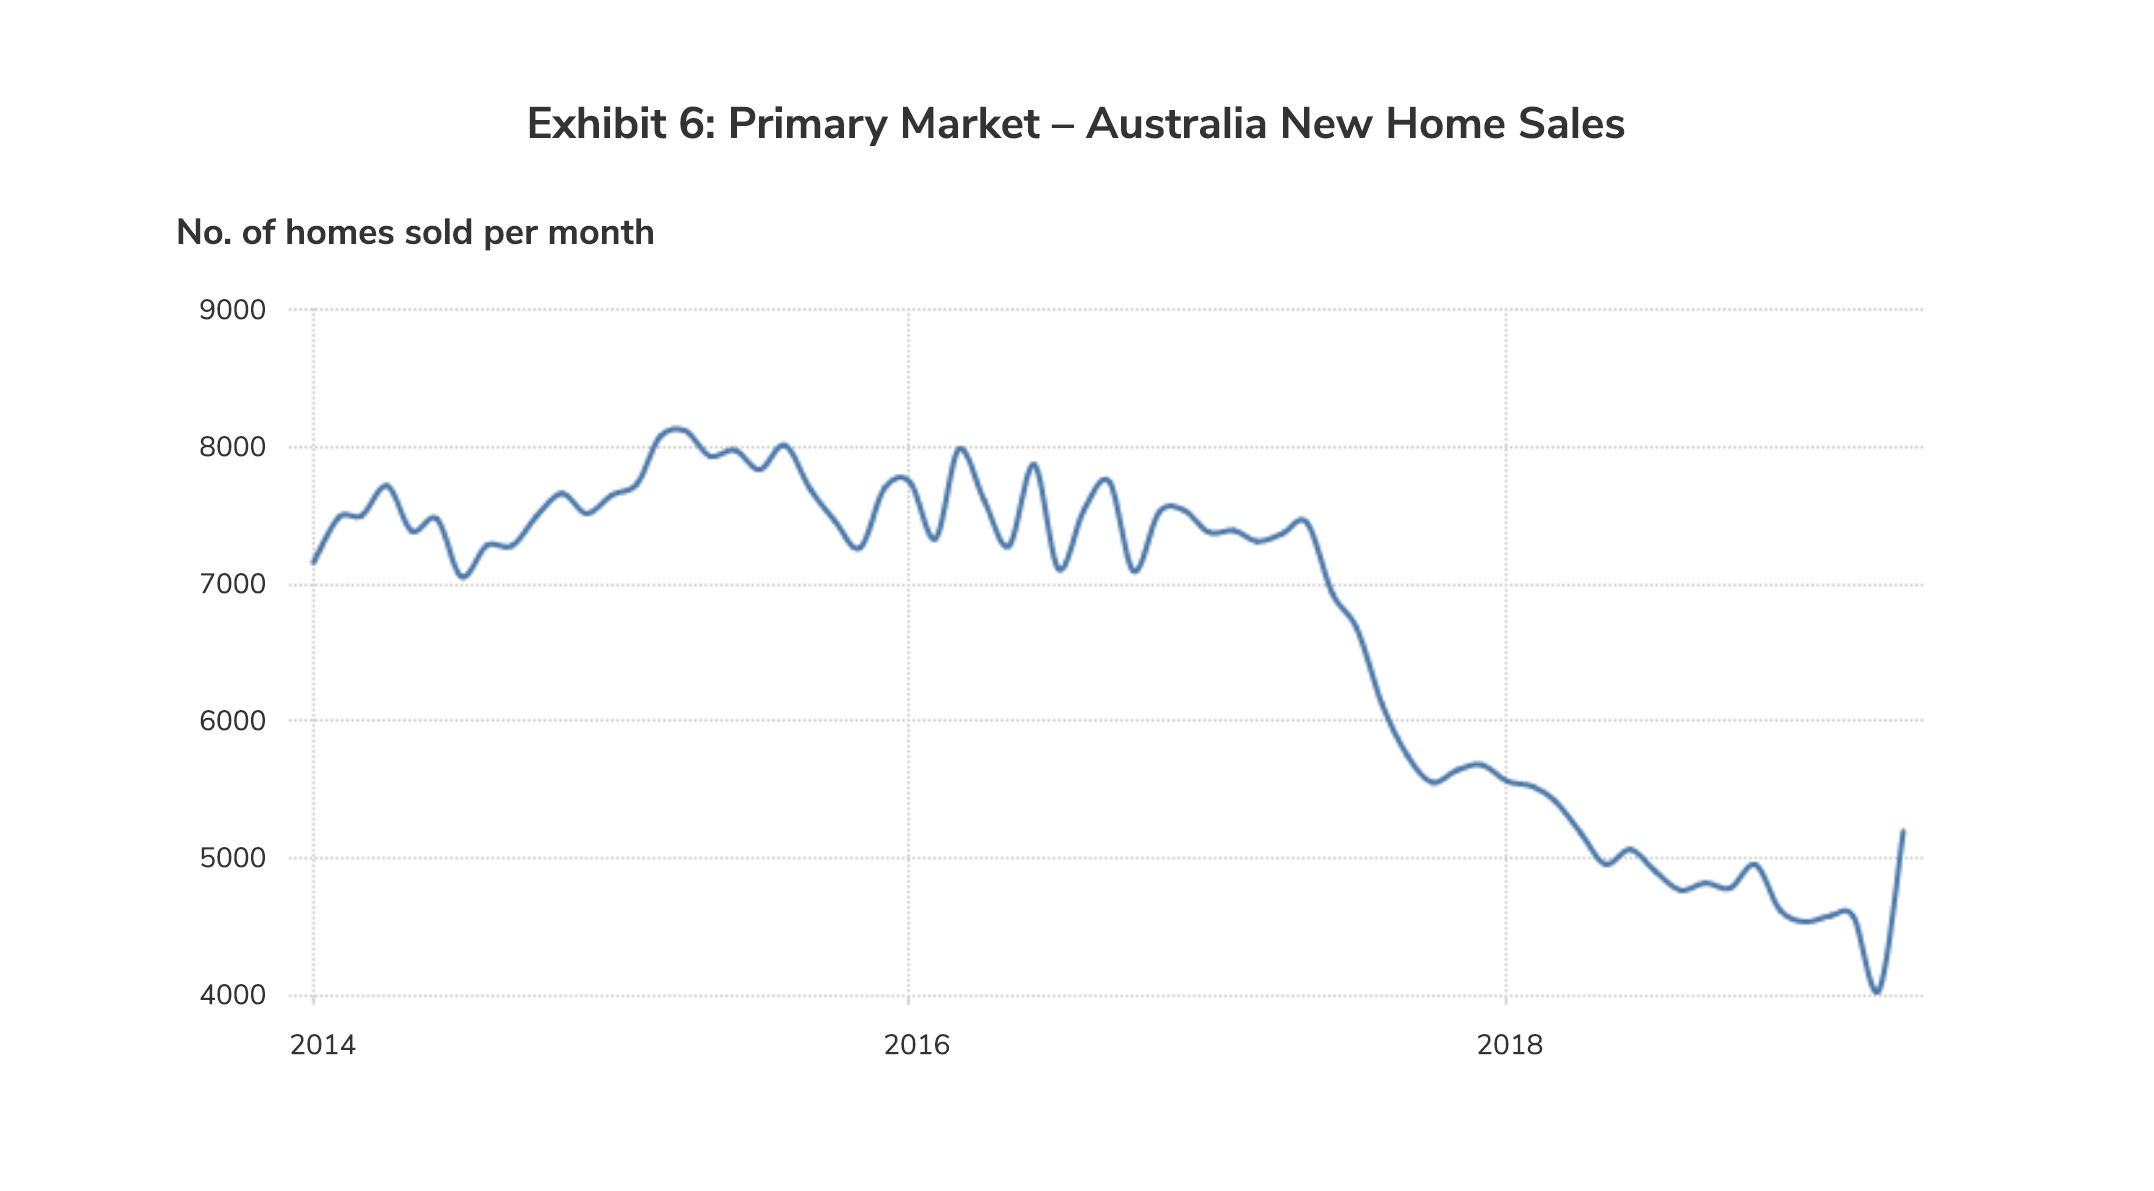 Primary Market – Australia New Home Sales